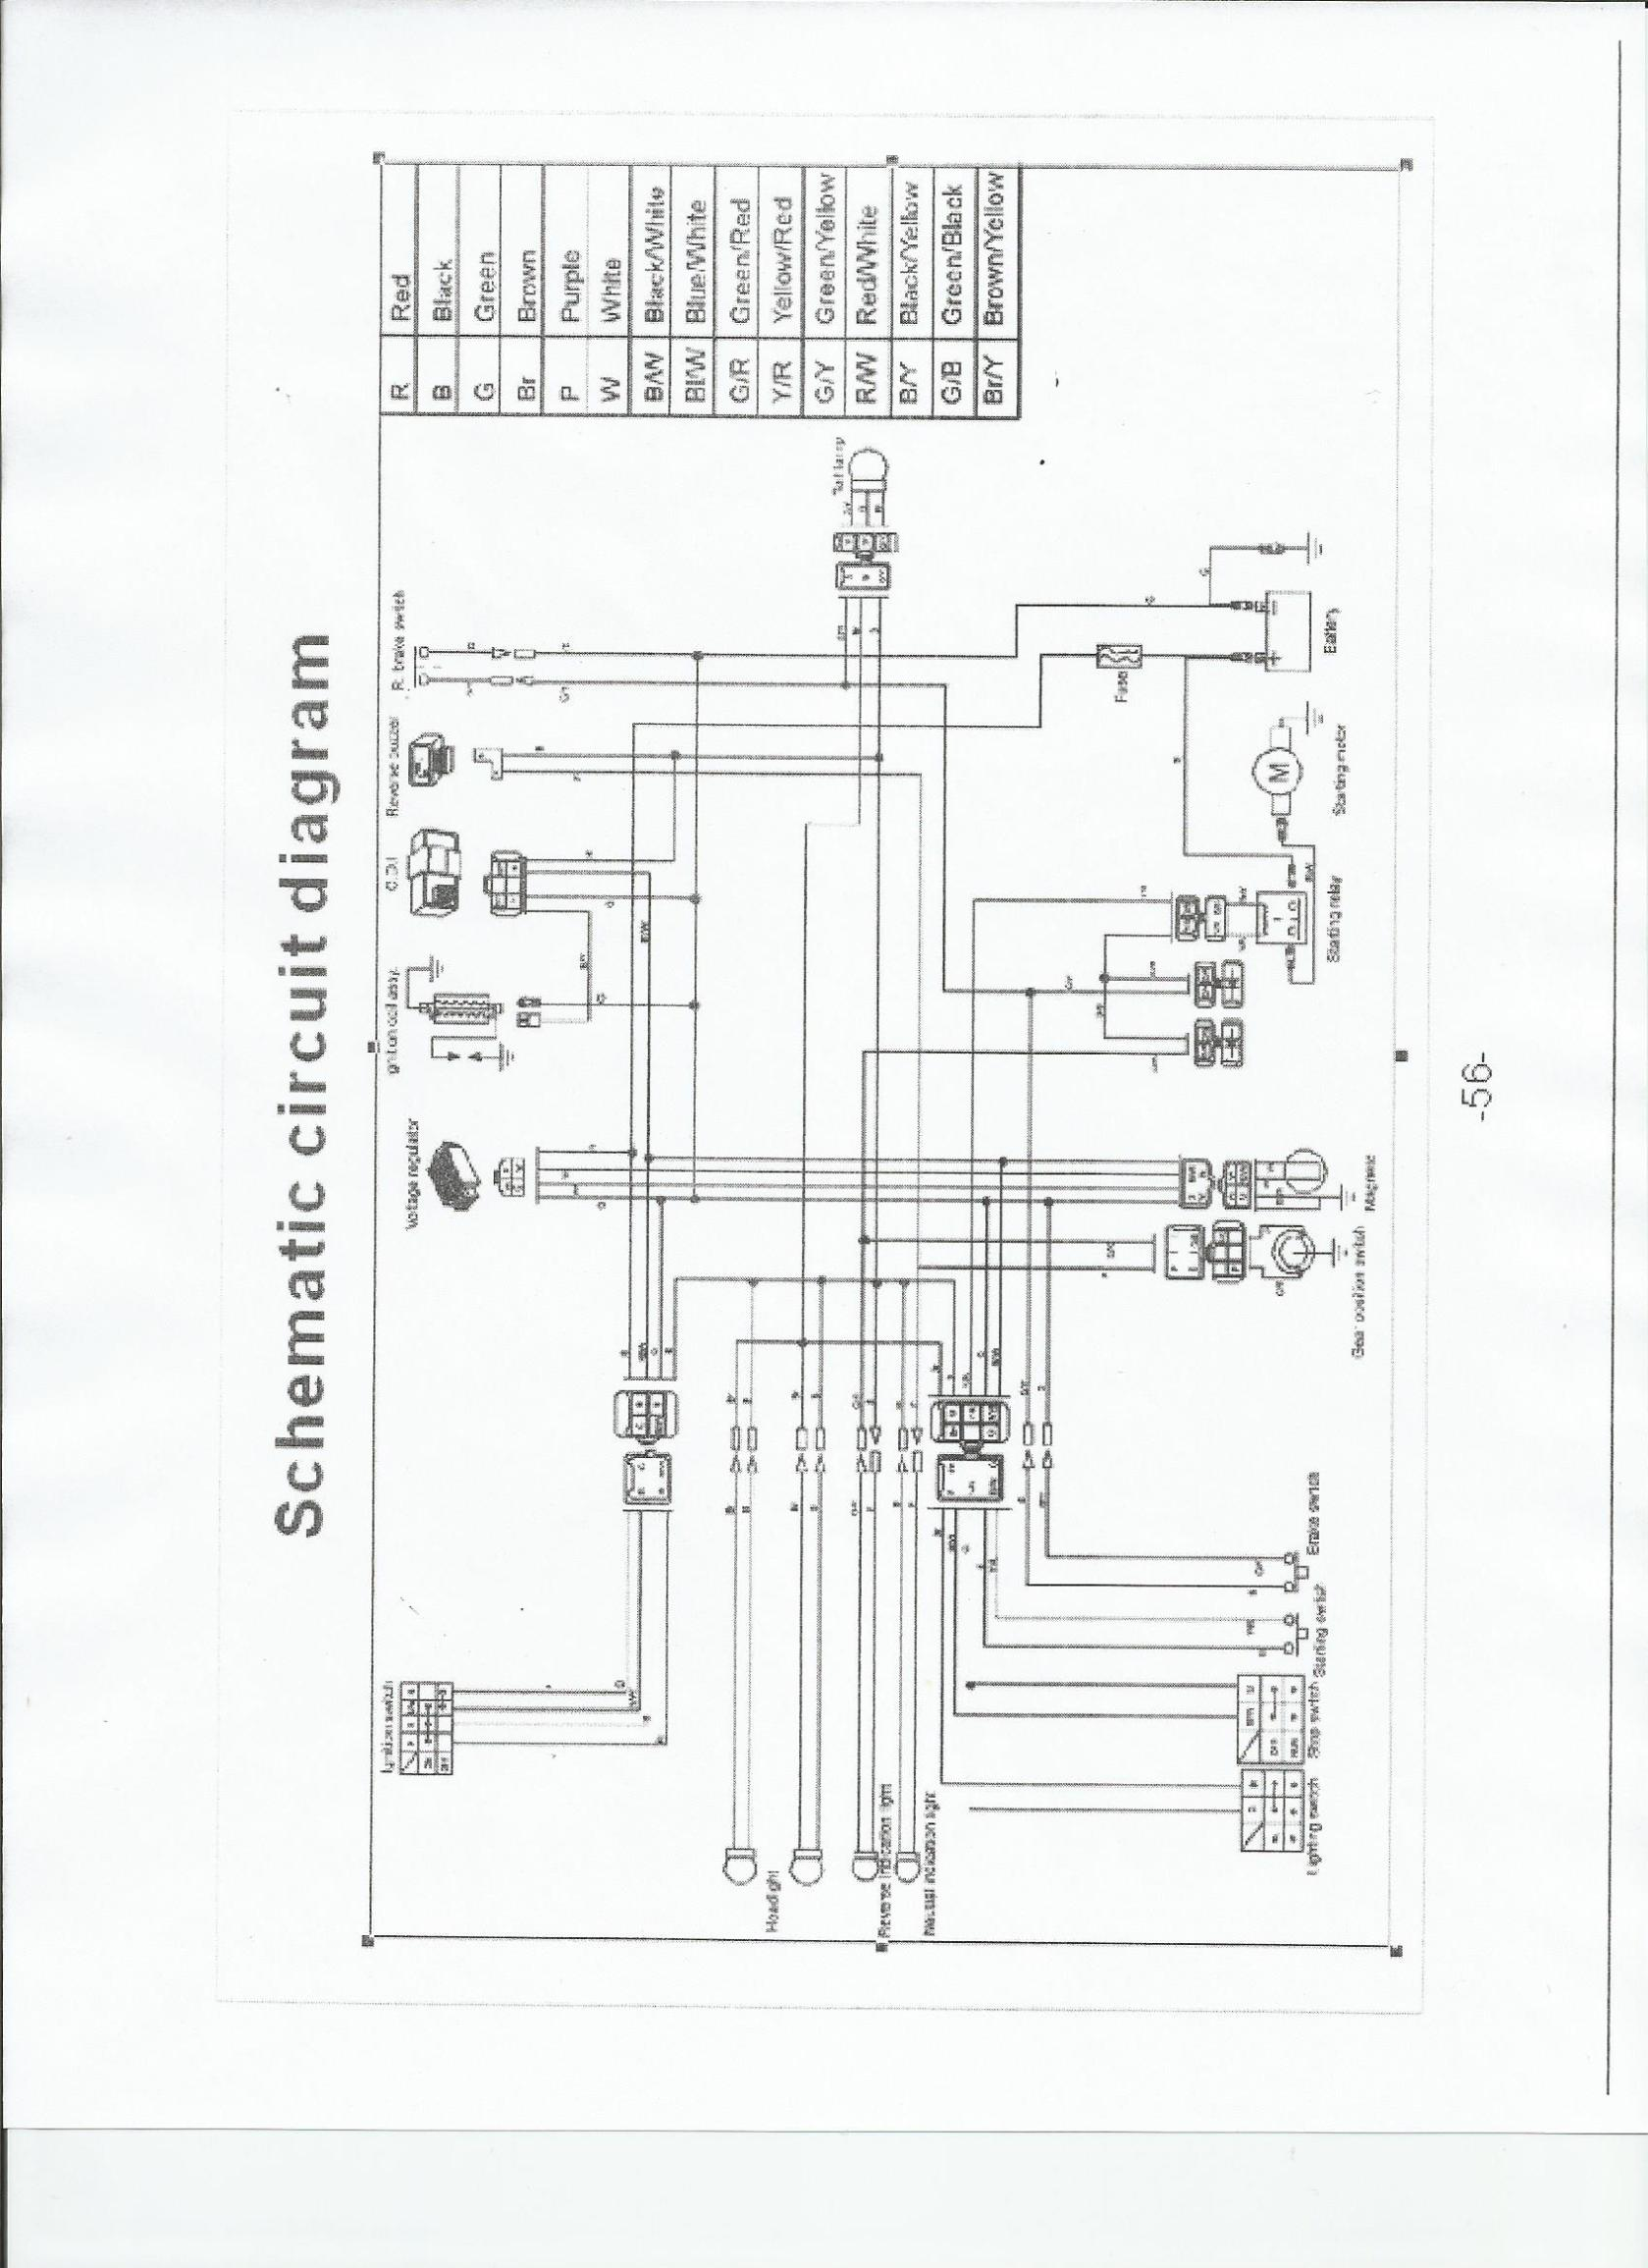 sunl wheeler wiring diagram sunl 90cc atv wiring diagram wiring diagrams roketa 110cc atv wiring diagram wire